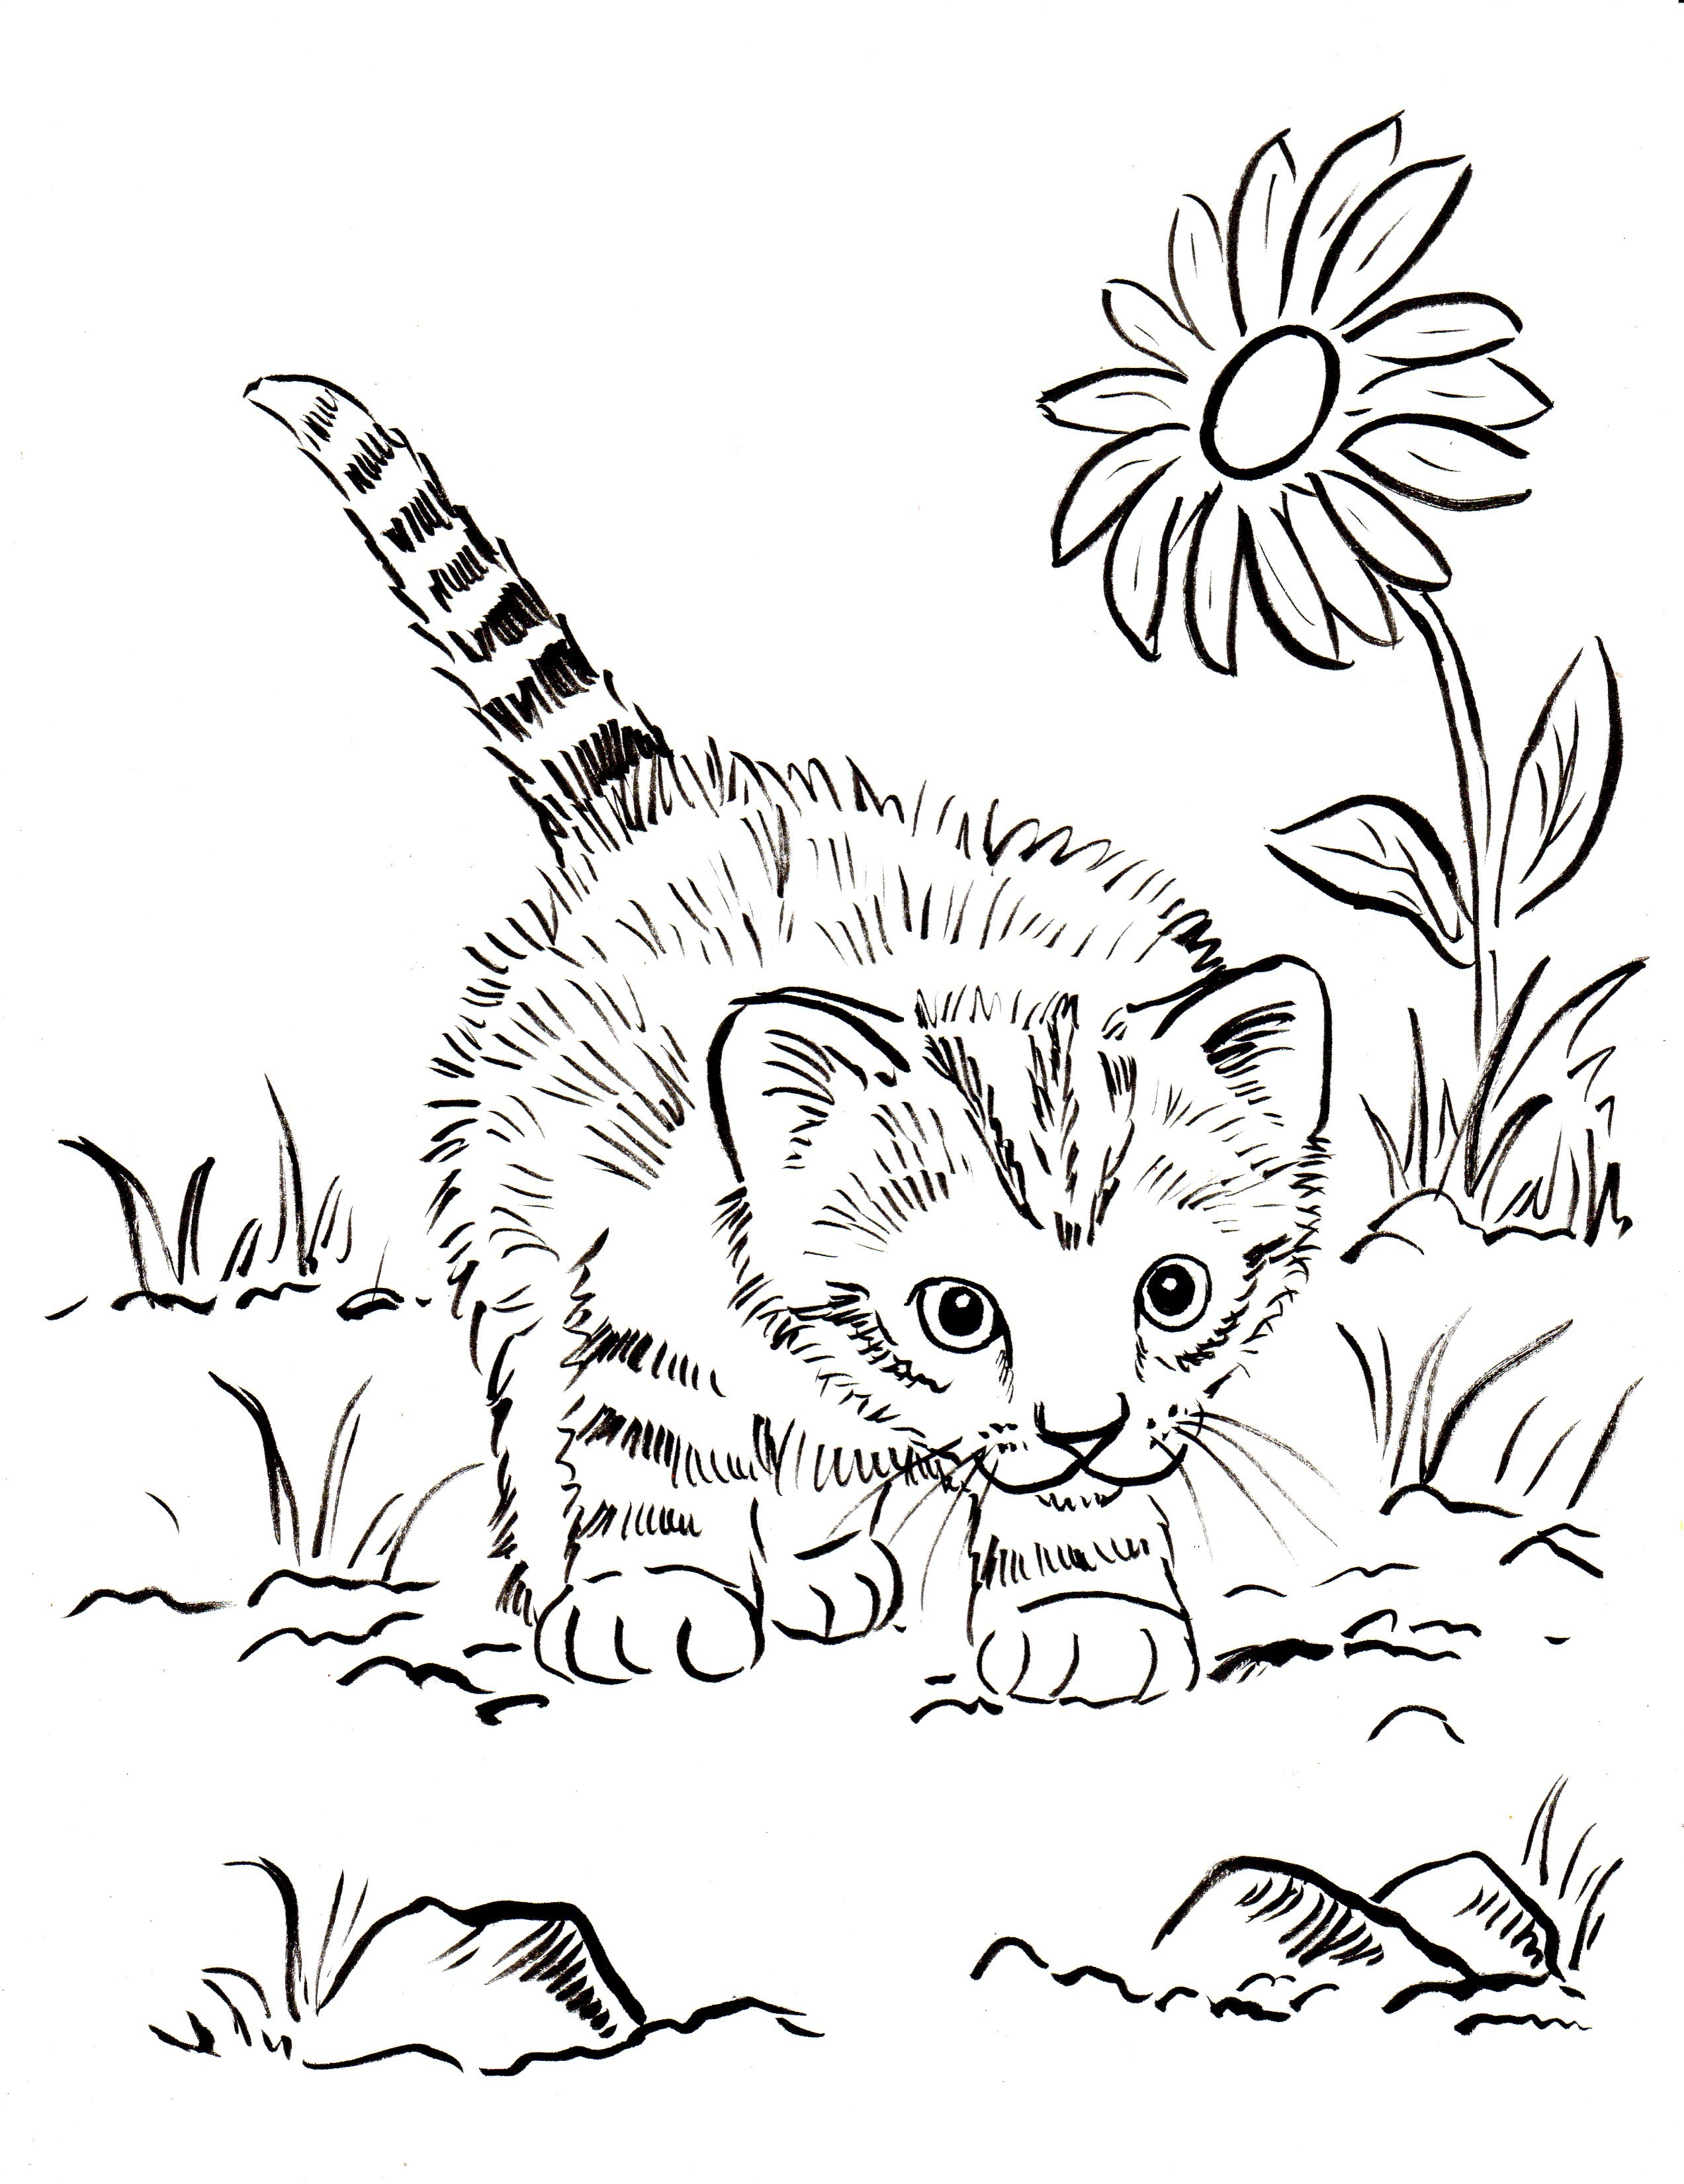 yafla coloring pages - photo #41